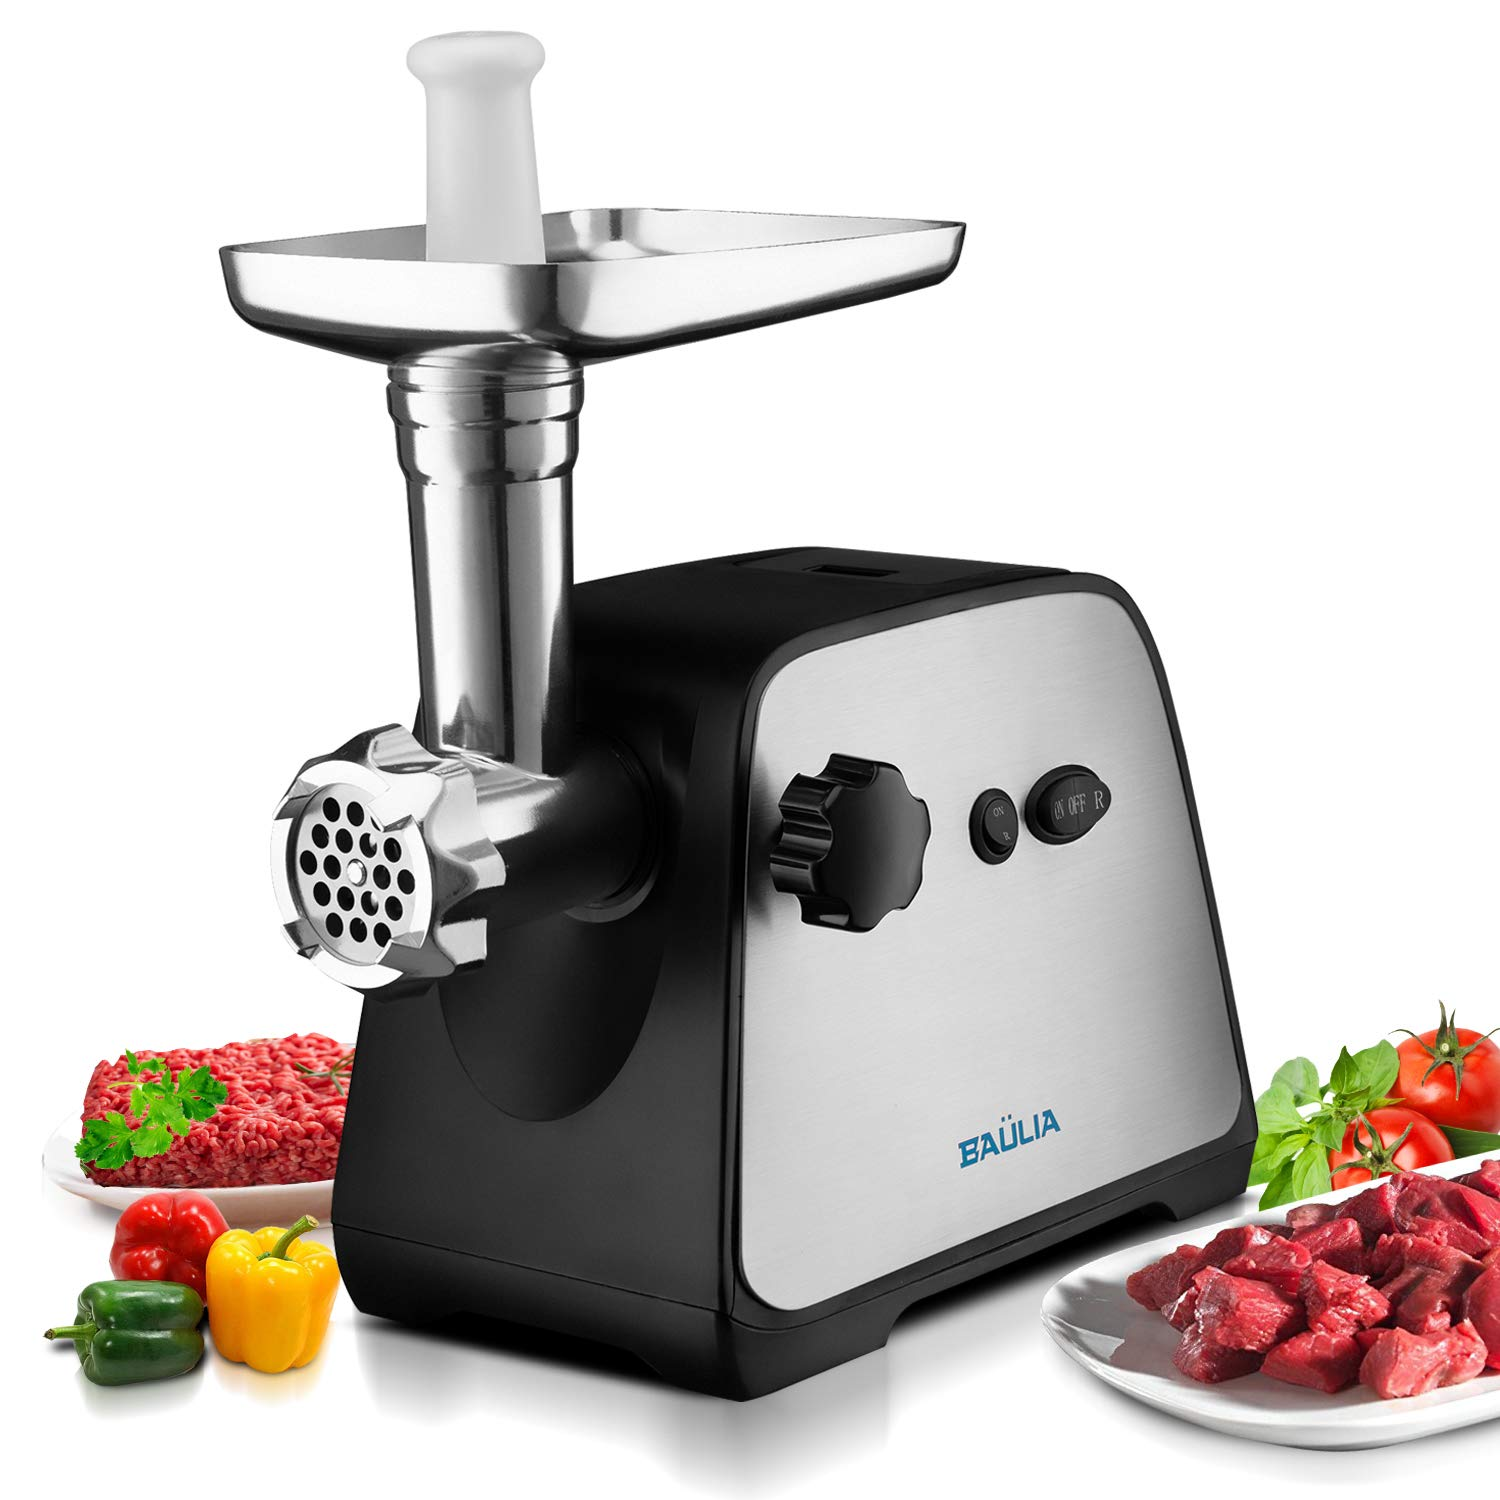 Baulia MG806 Electric Grinder for Home Use, 3 Cutting Blades & Stuffing Tubes, Stainless Steel Meat Mincer for Making Sausages, Chopped Liver, Size #10, Silver